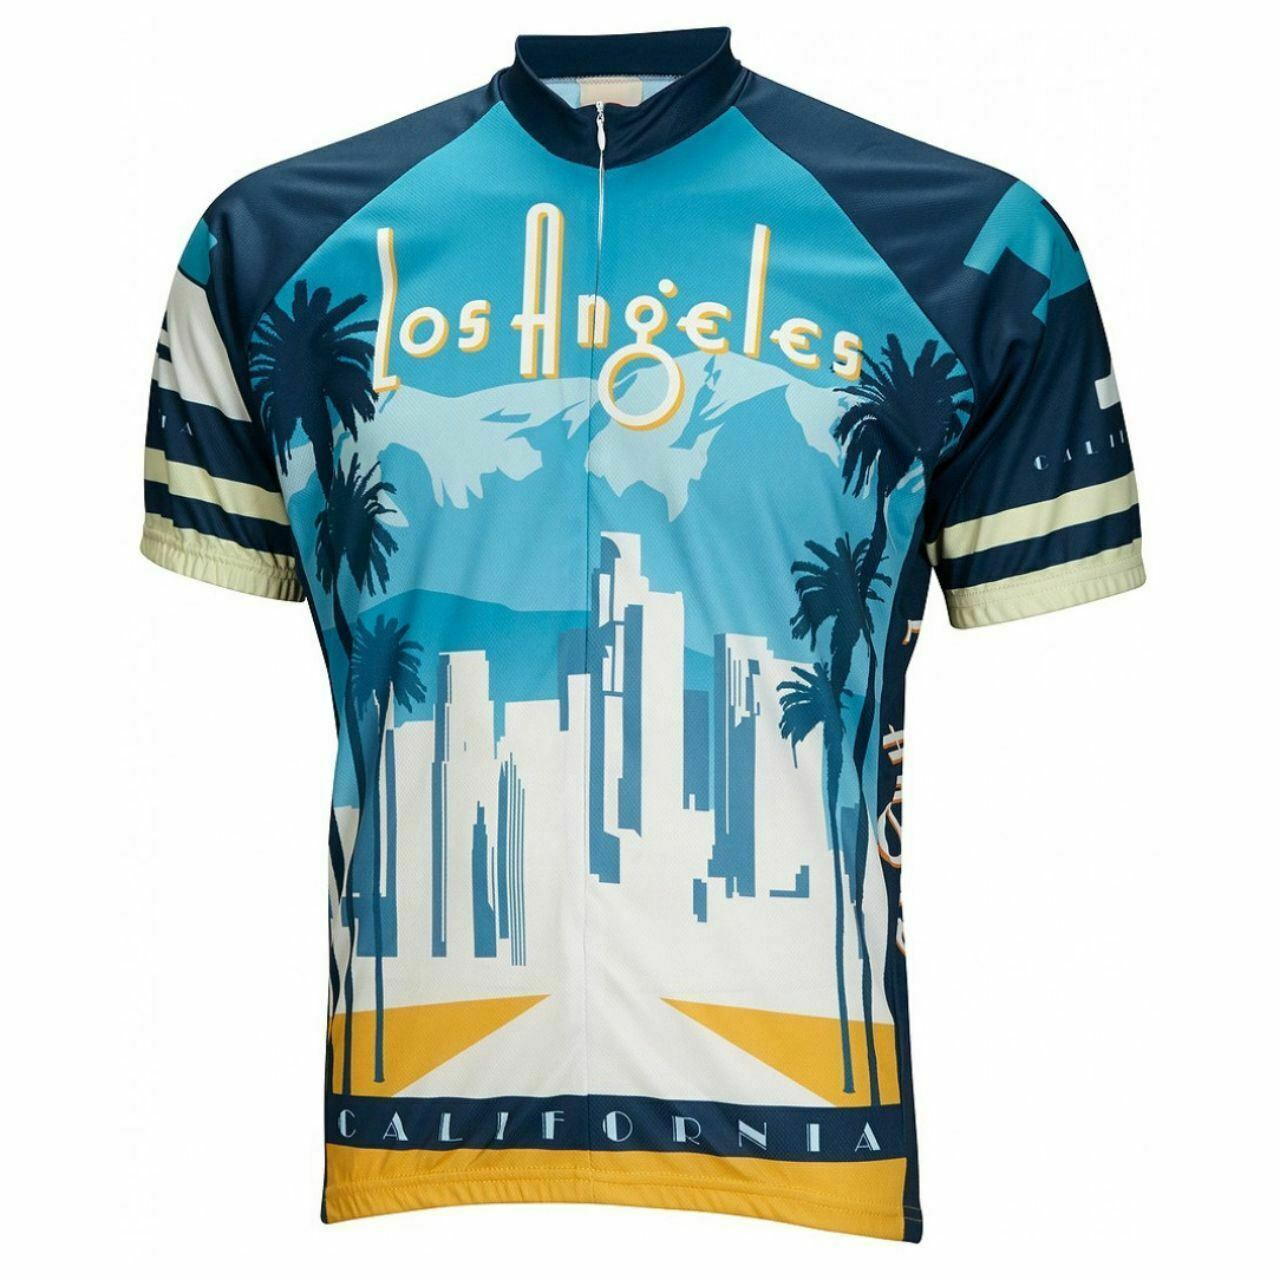 Los Angeles Skyline Short  sleeve 19  zip men's cycling jersey  best prices and freshest styles